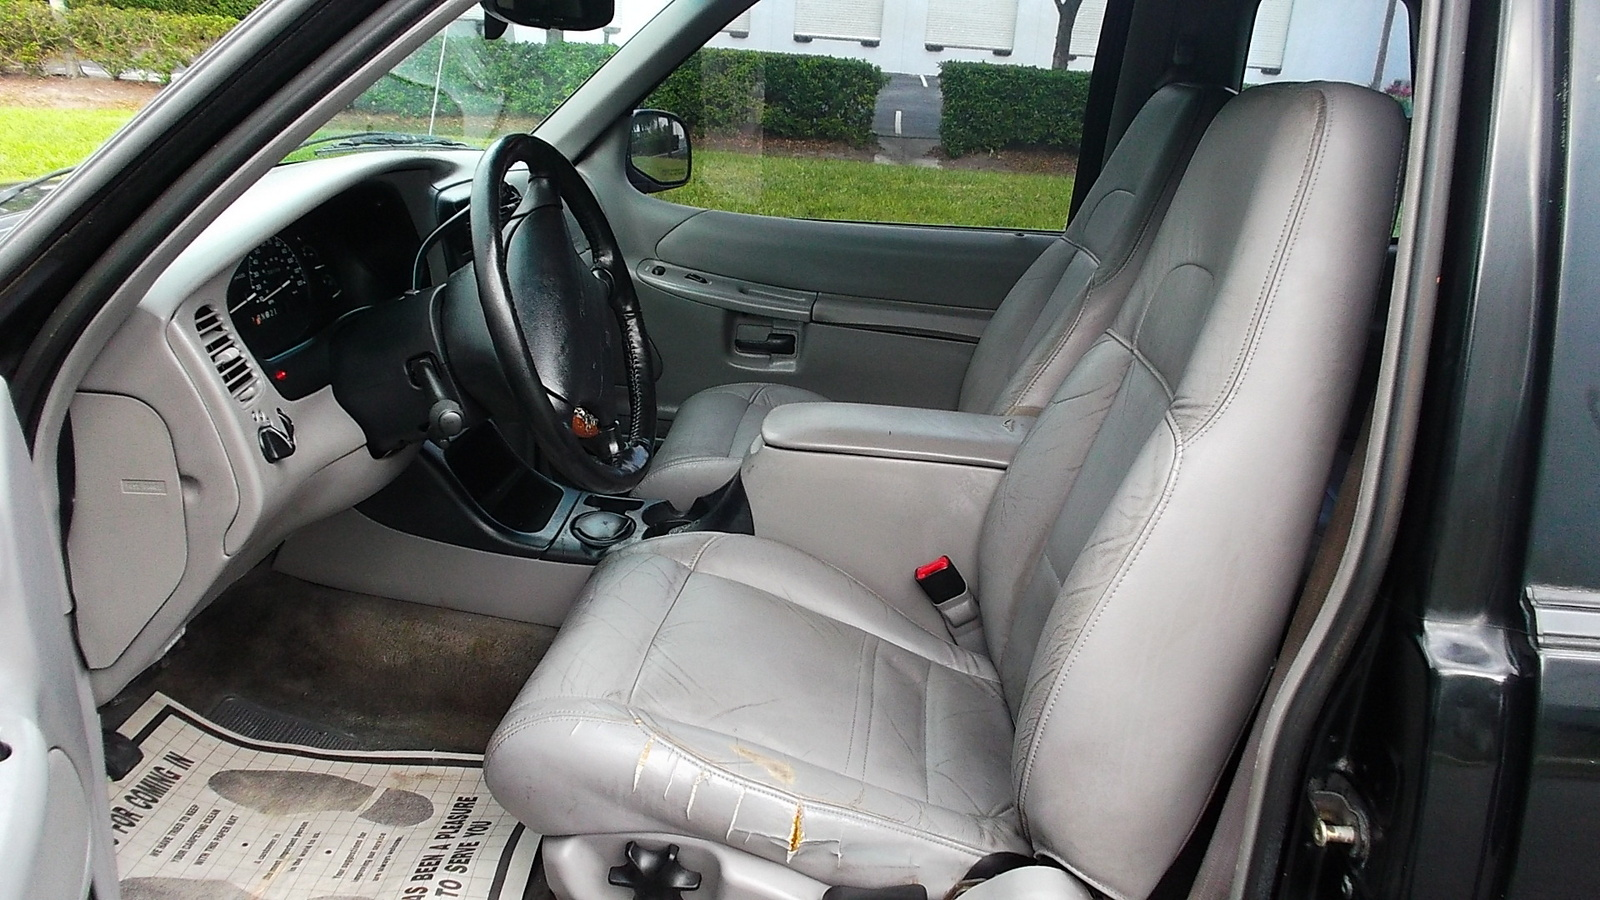 1999 Ford Explorer Interior Car Interior Design